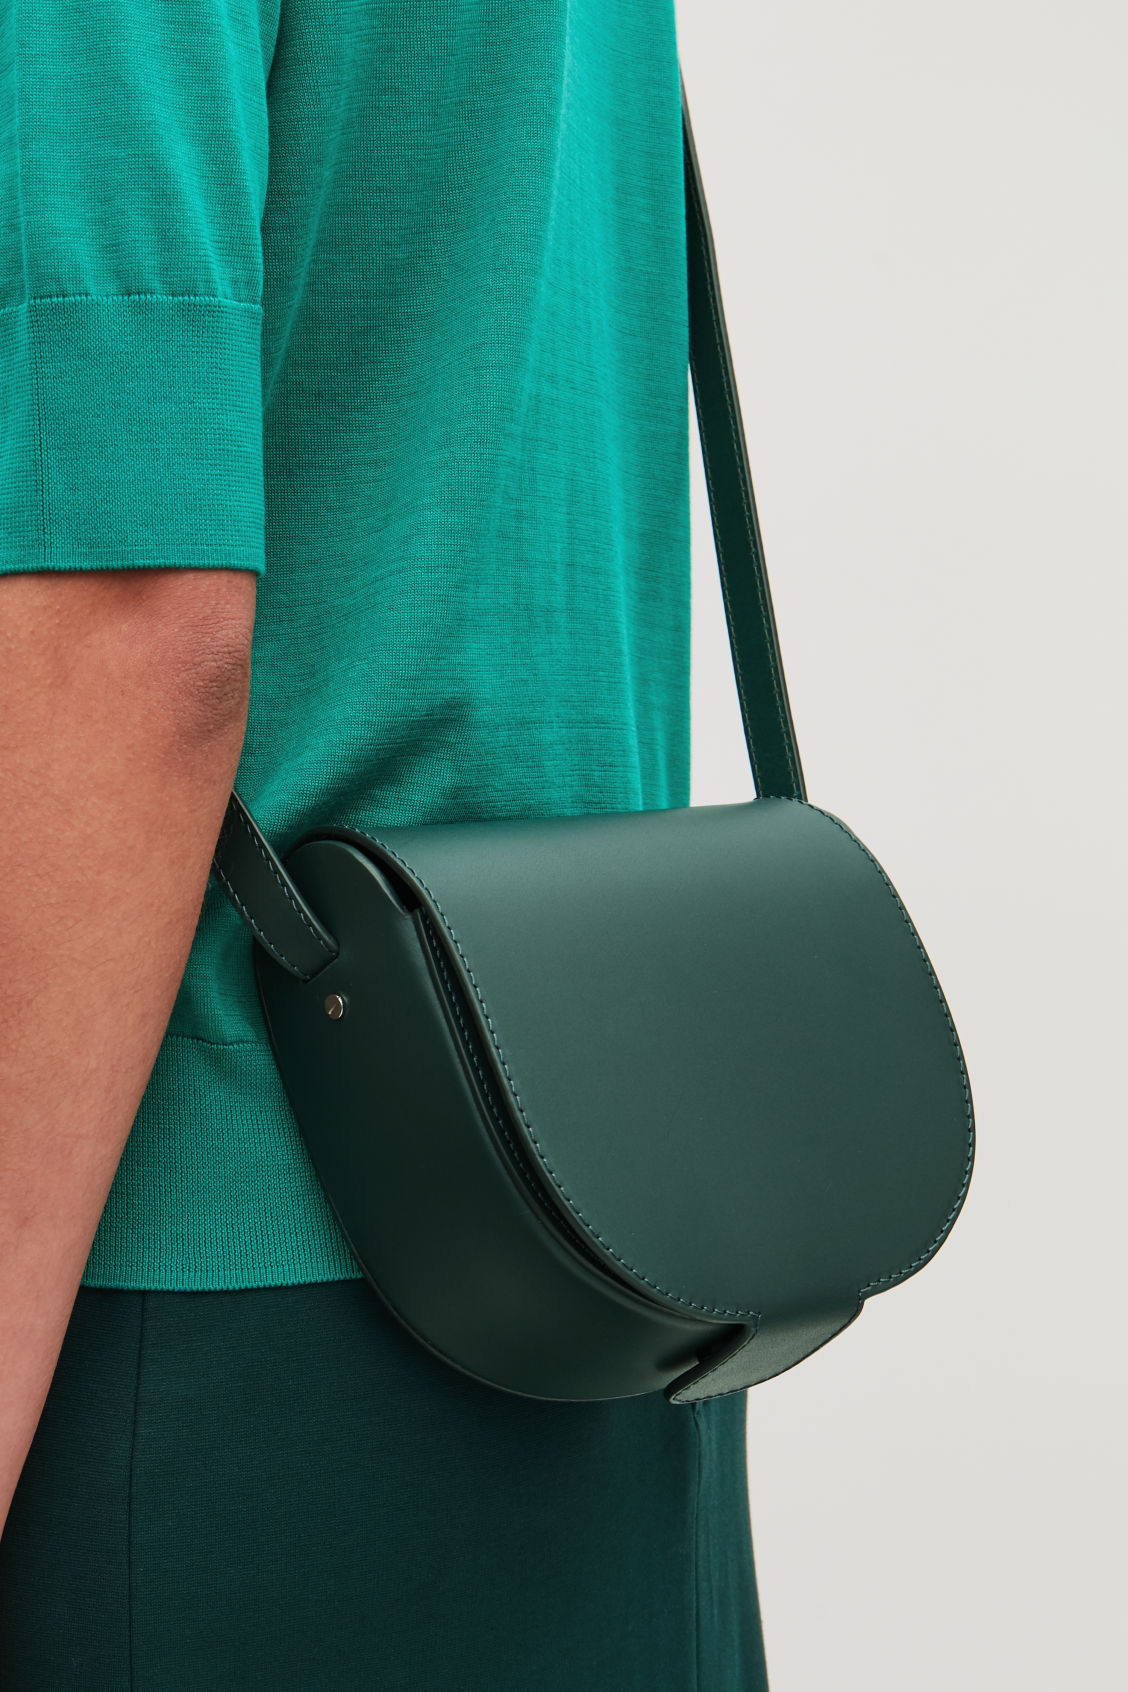 Detailed image of Cos small leather saddle bag in green